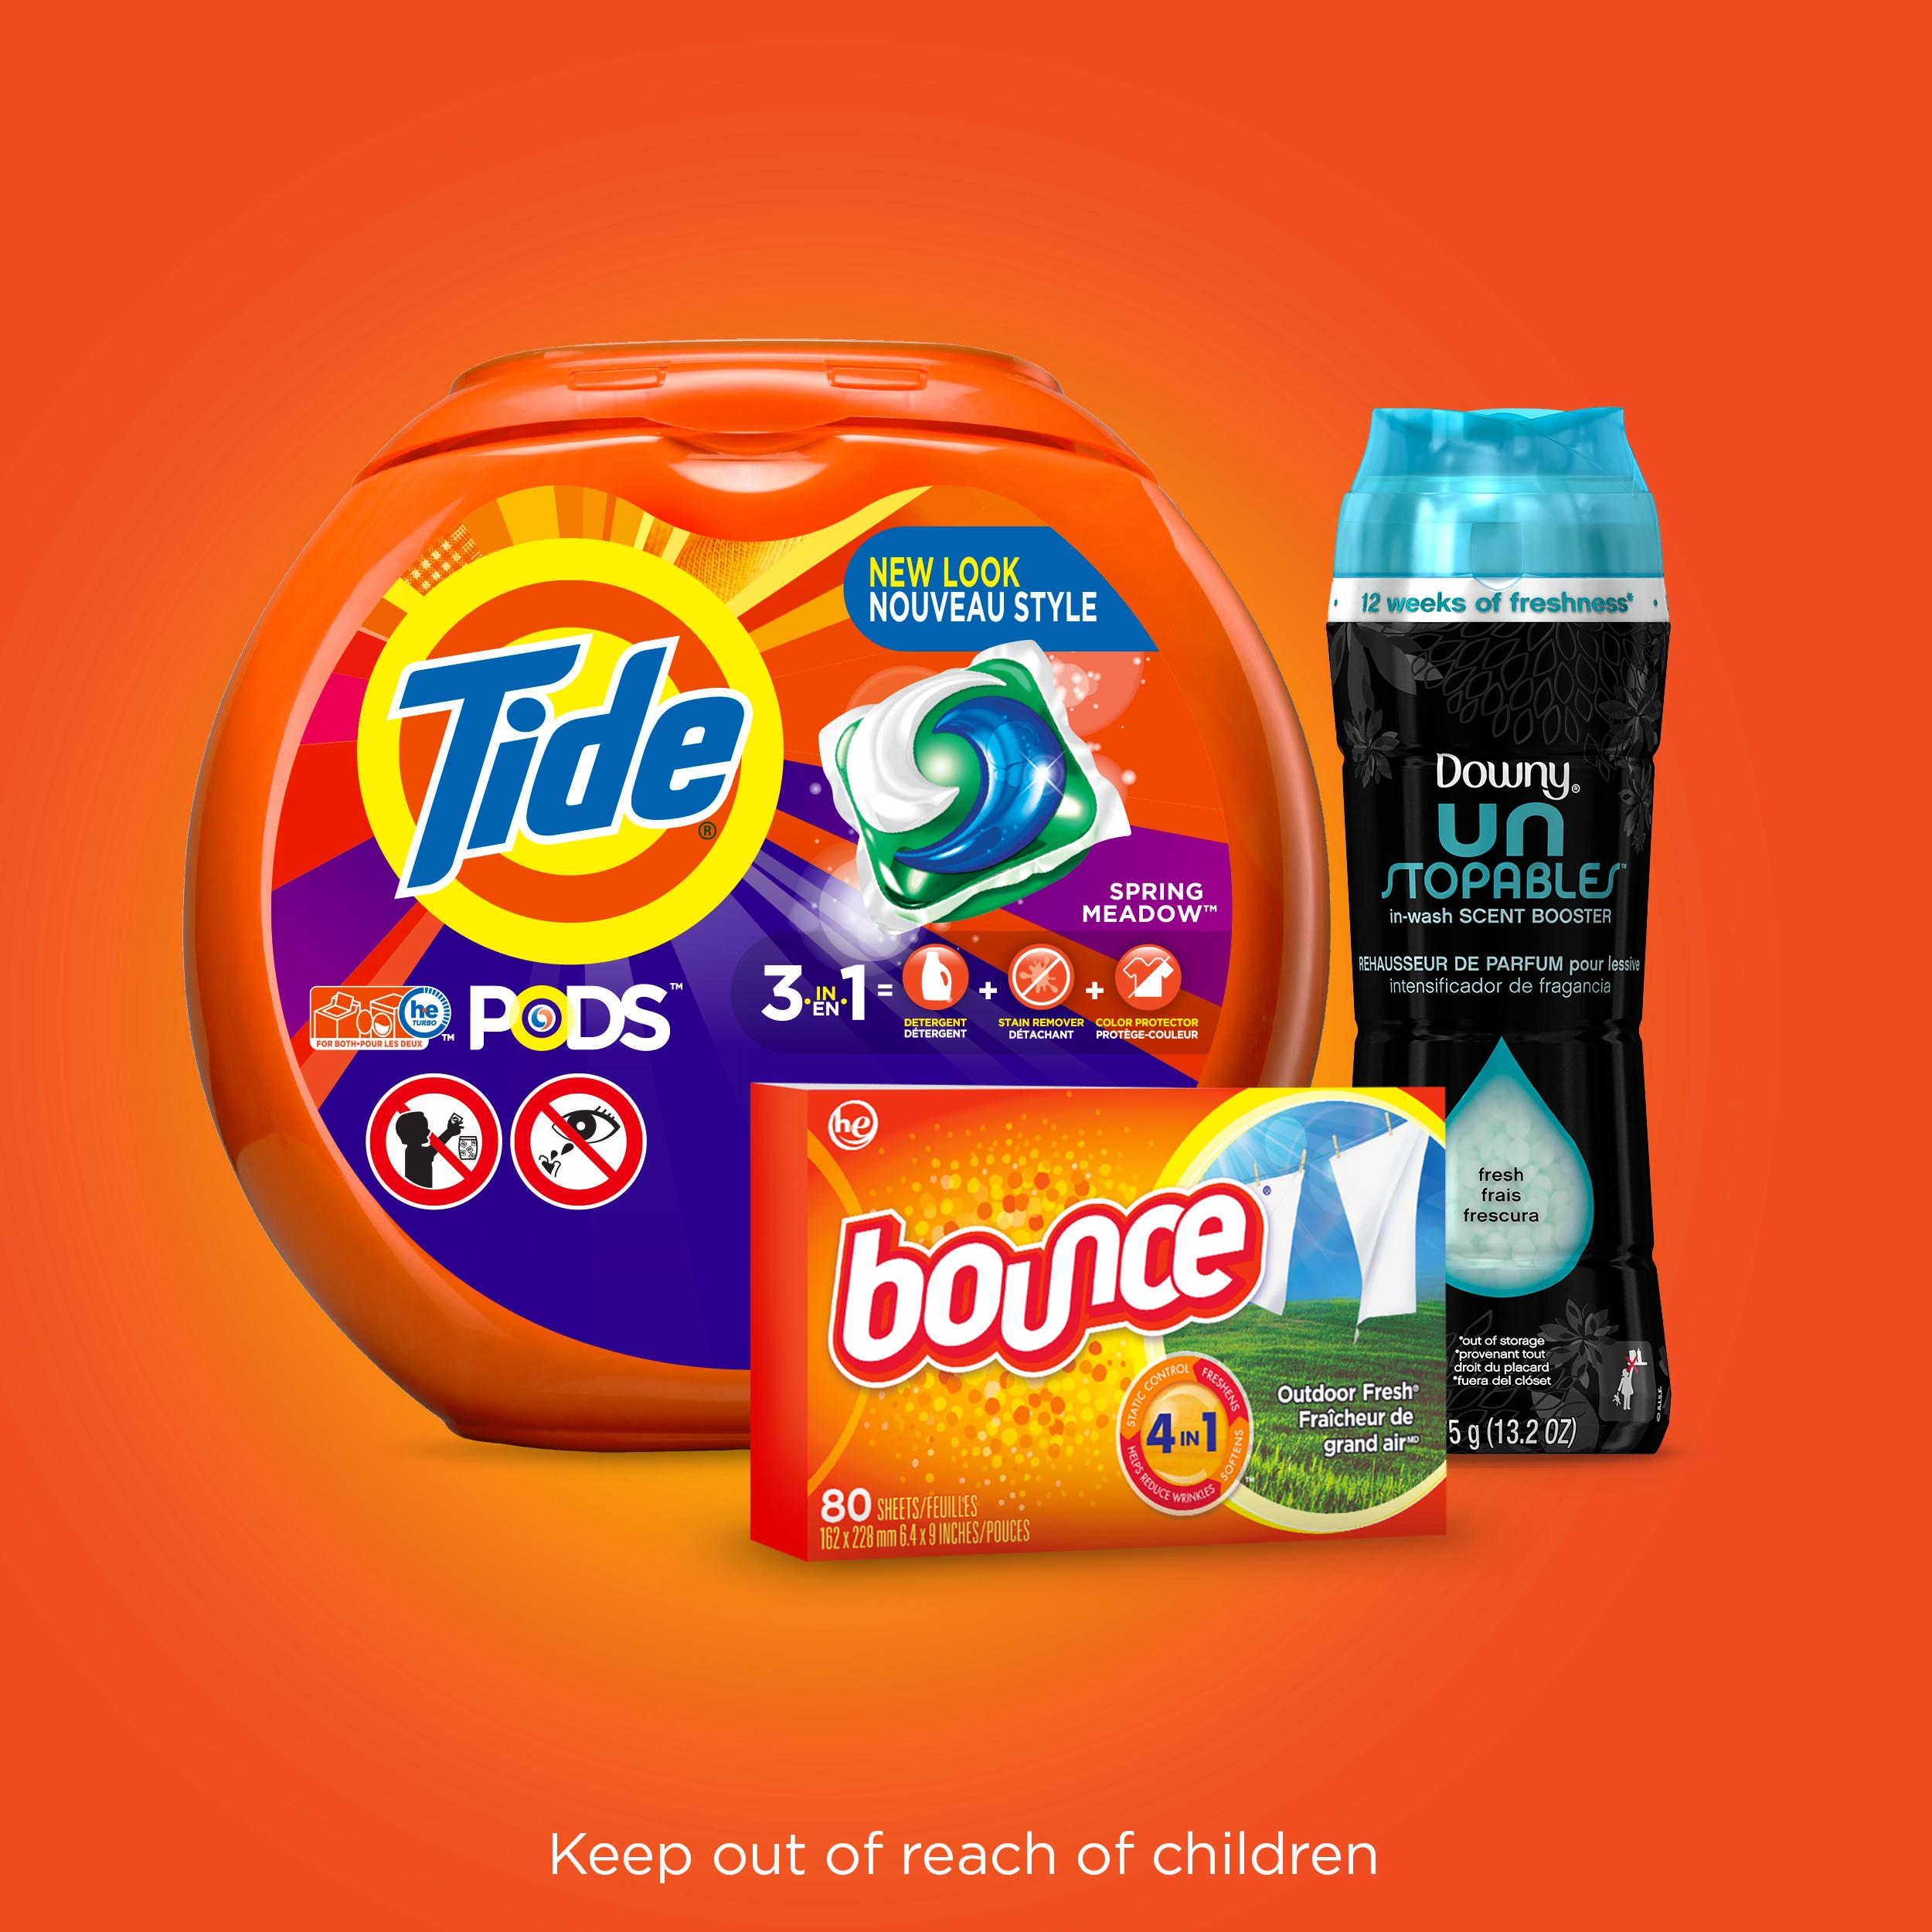 Tide Pods 3 In 1 He Turbo Laundry Detergent Pacs Spring